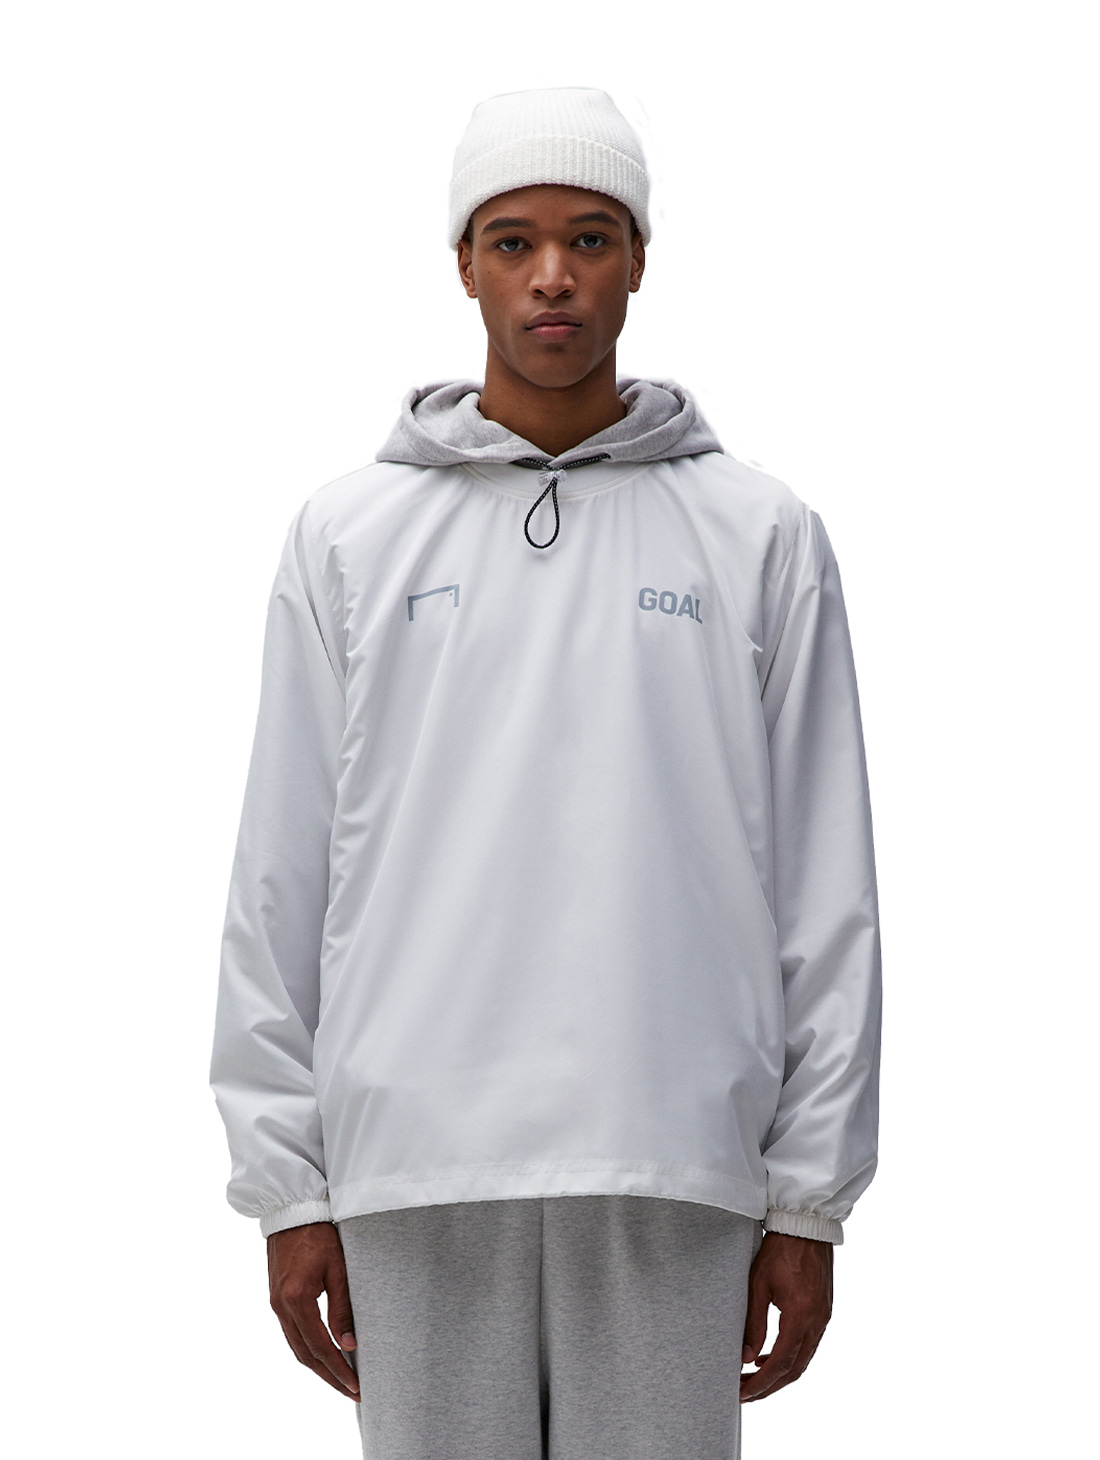 GOALSTUDIO SOLID WIND PULLOVER - WHITE